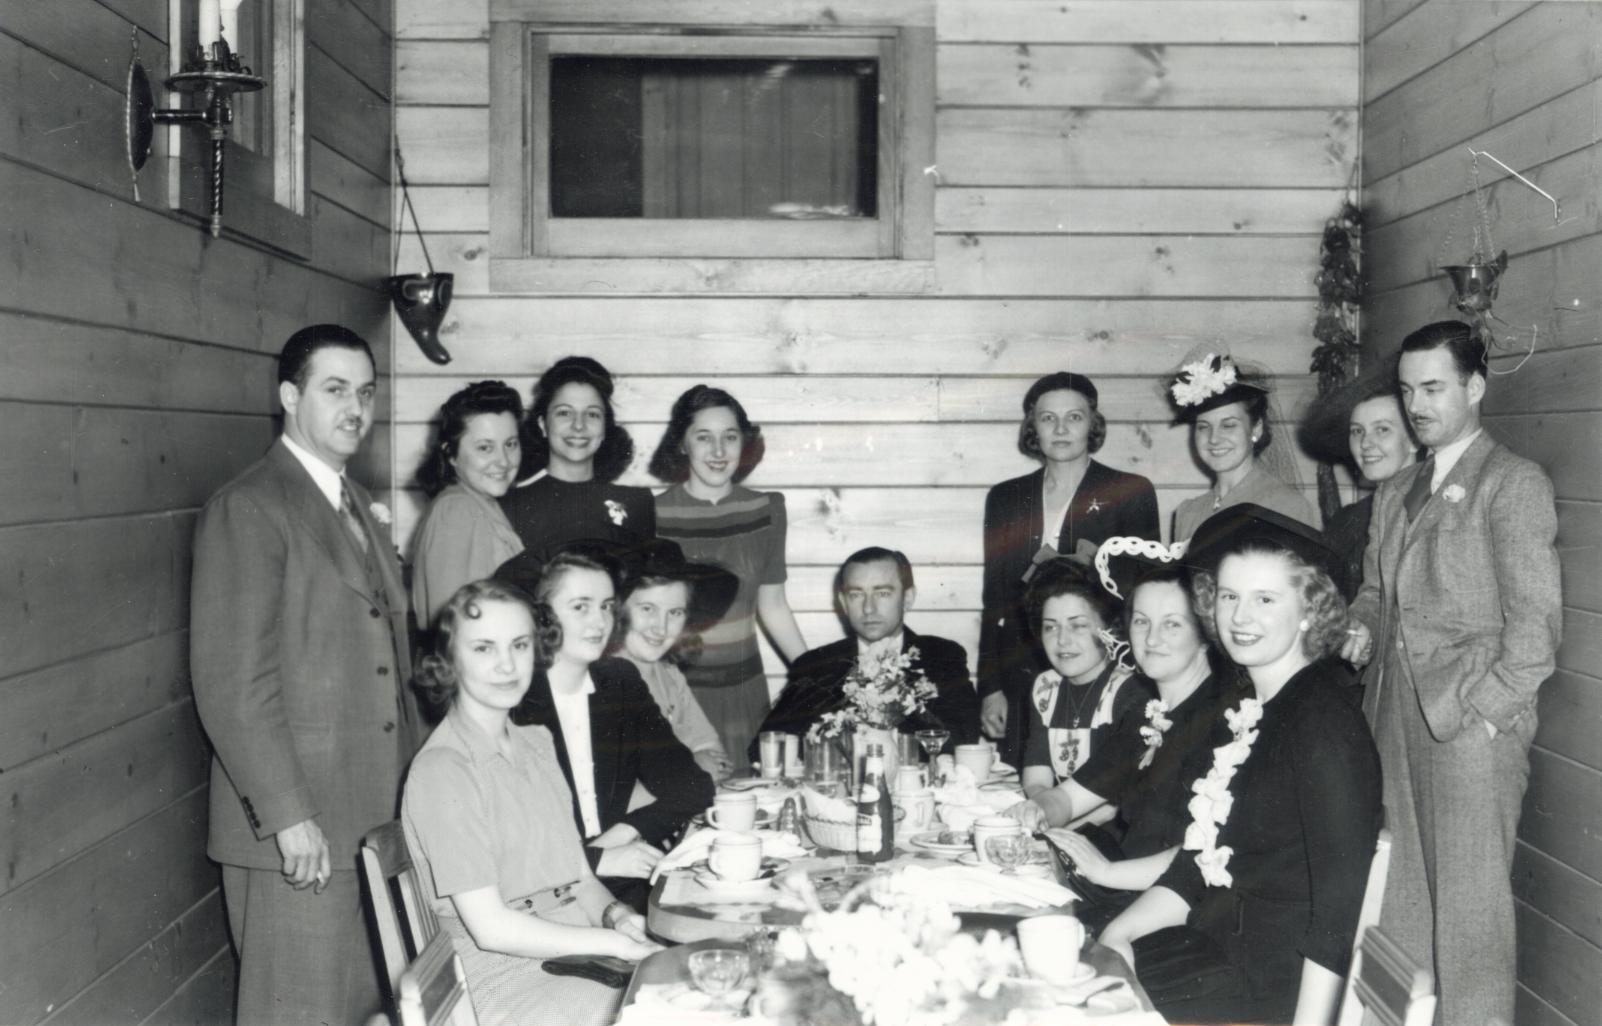 Shipyard dinner party, Rutherford's